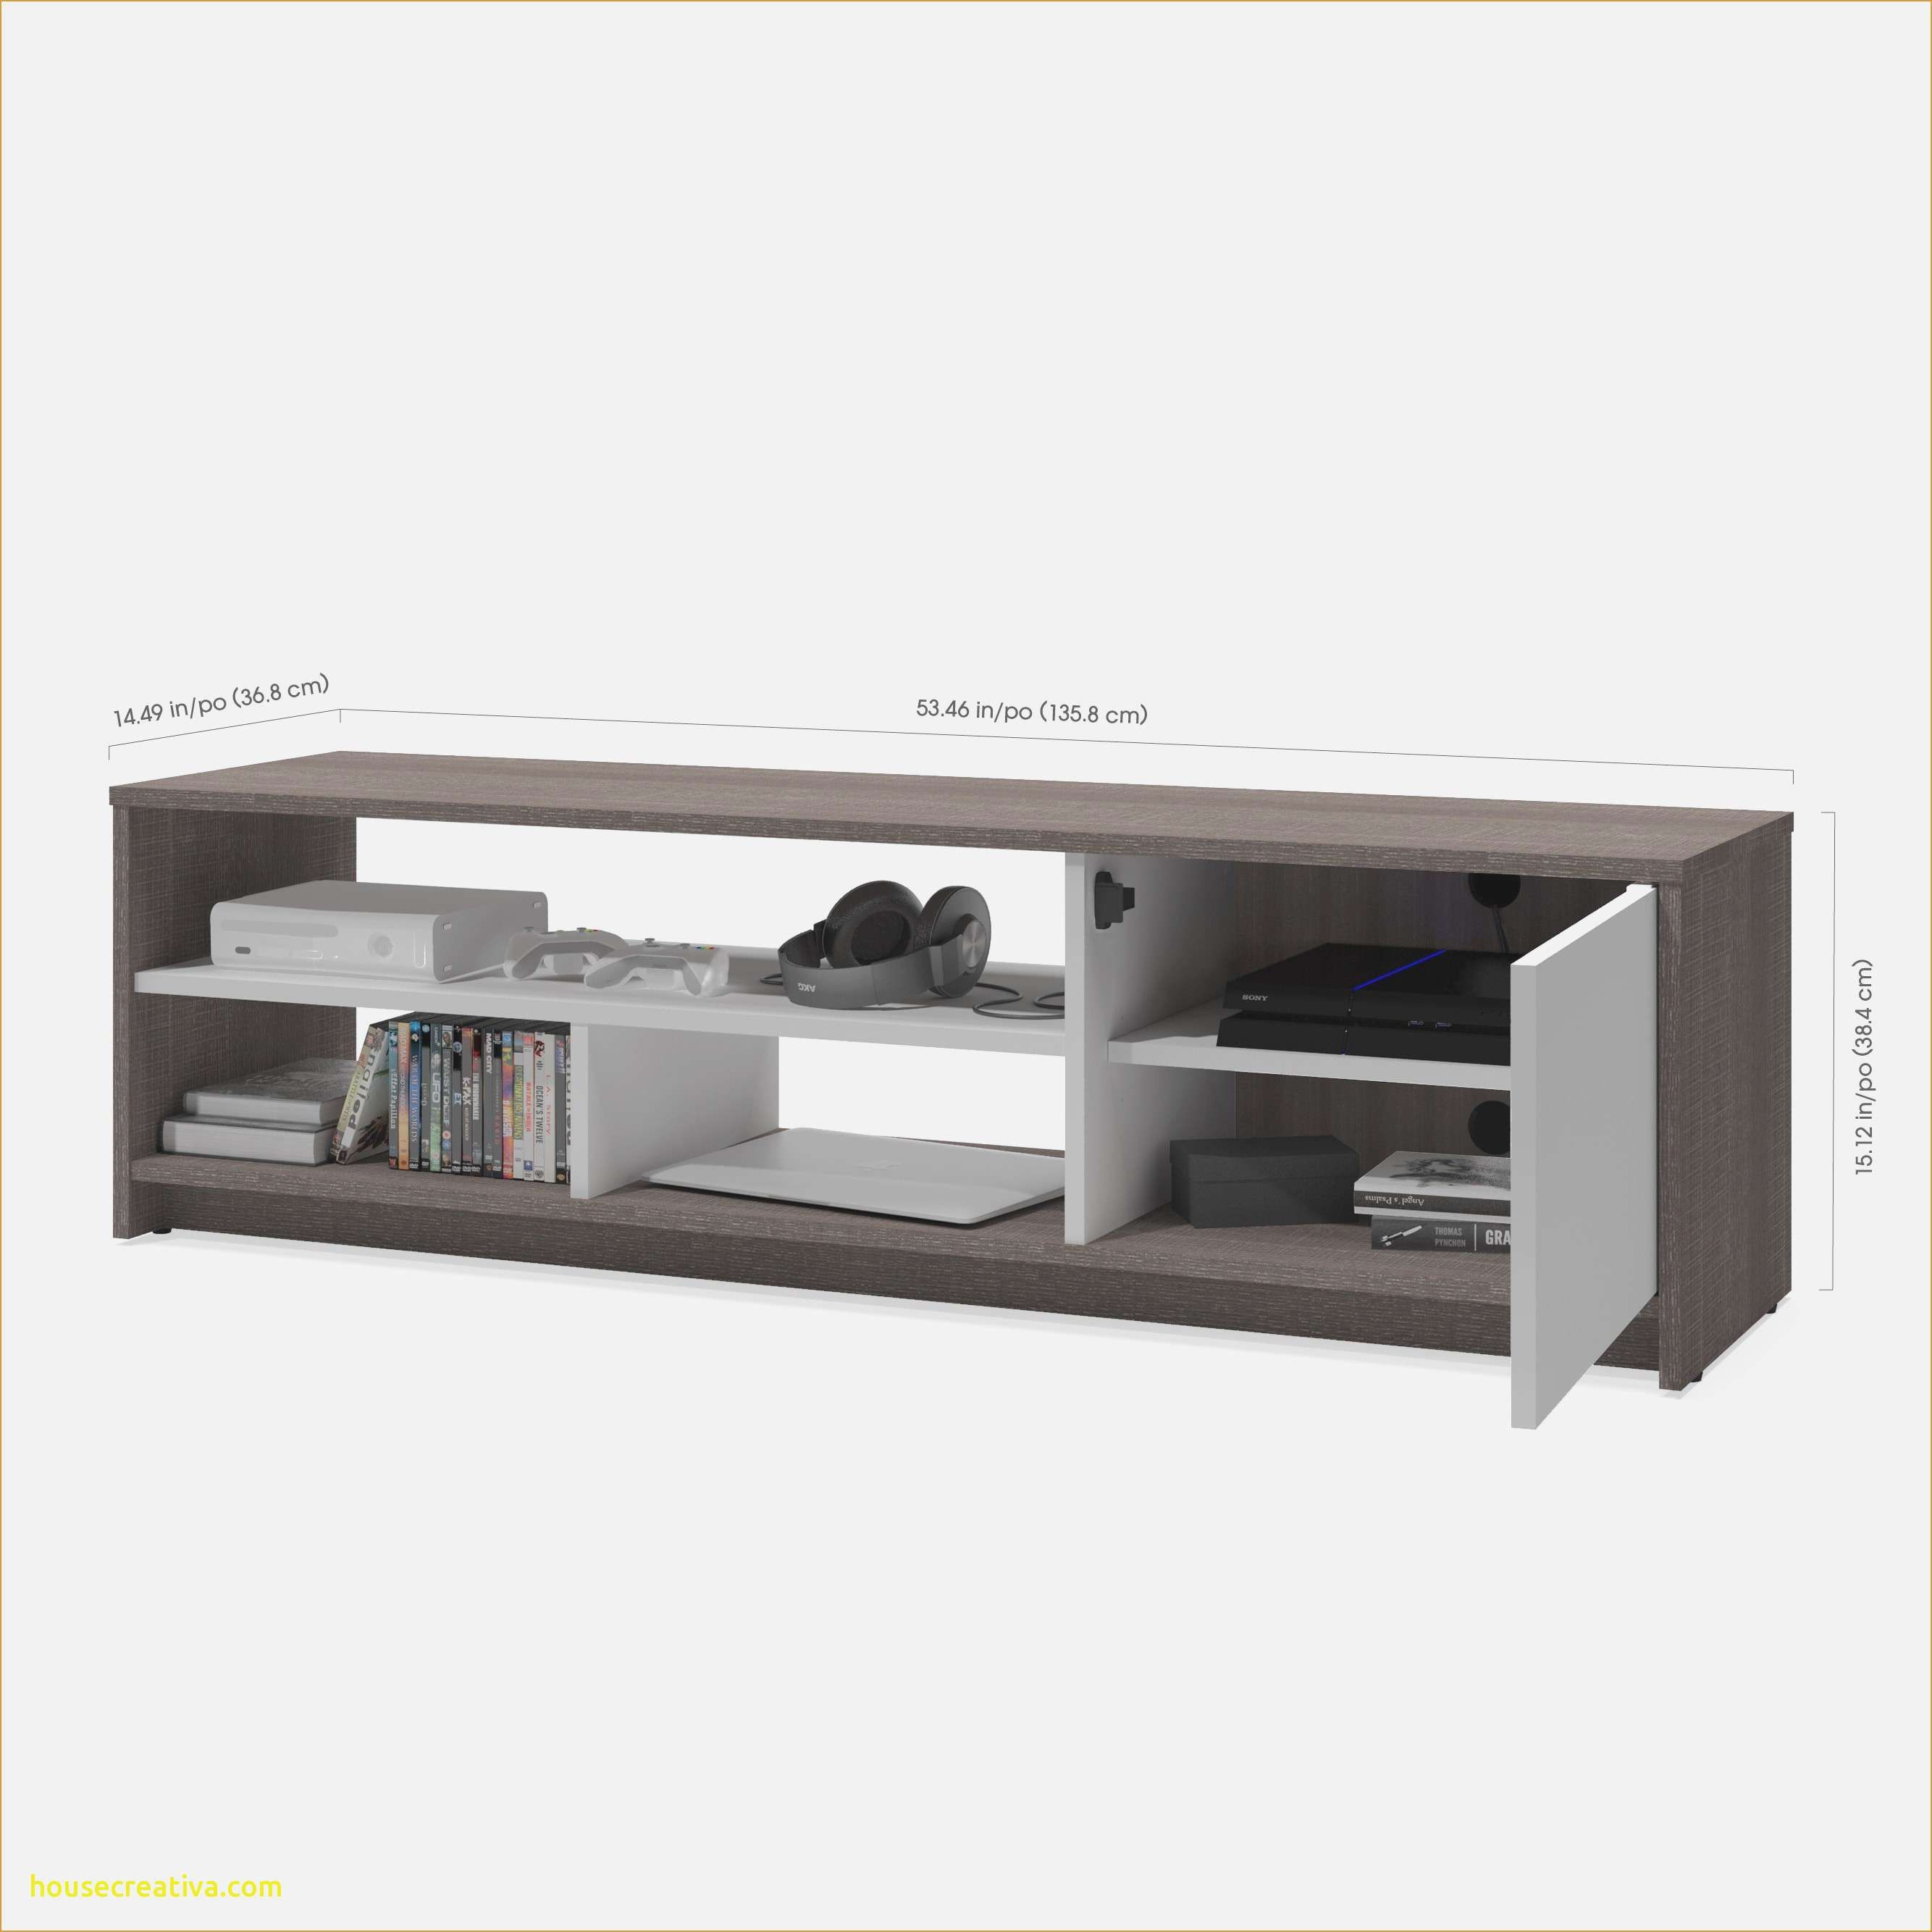 Inspirational 36 Inch High Console Table Homedecoration